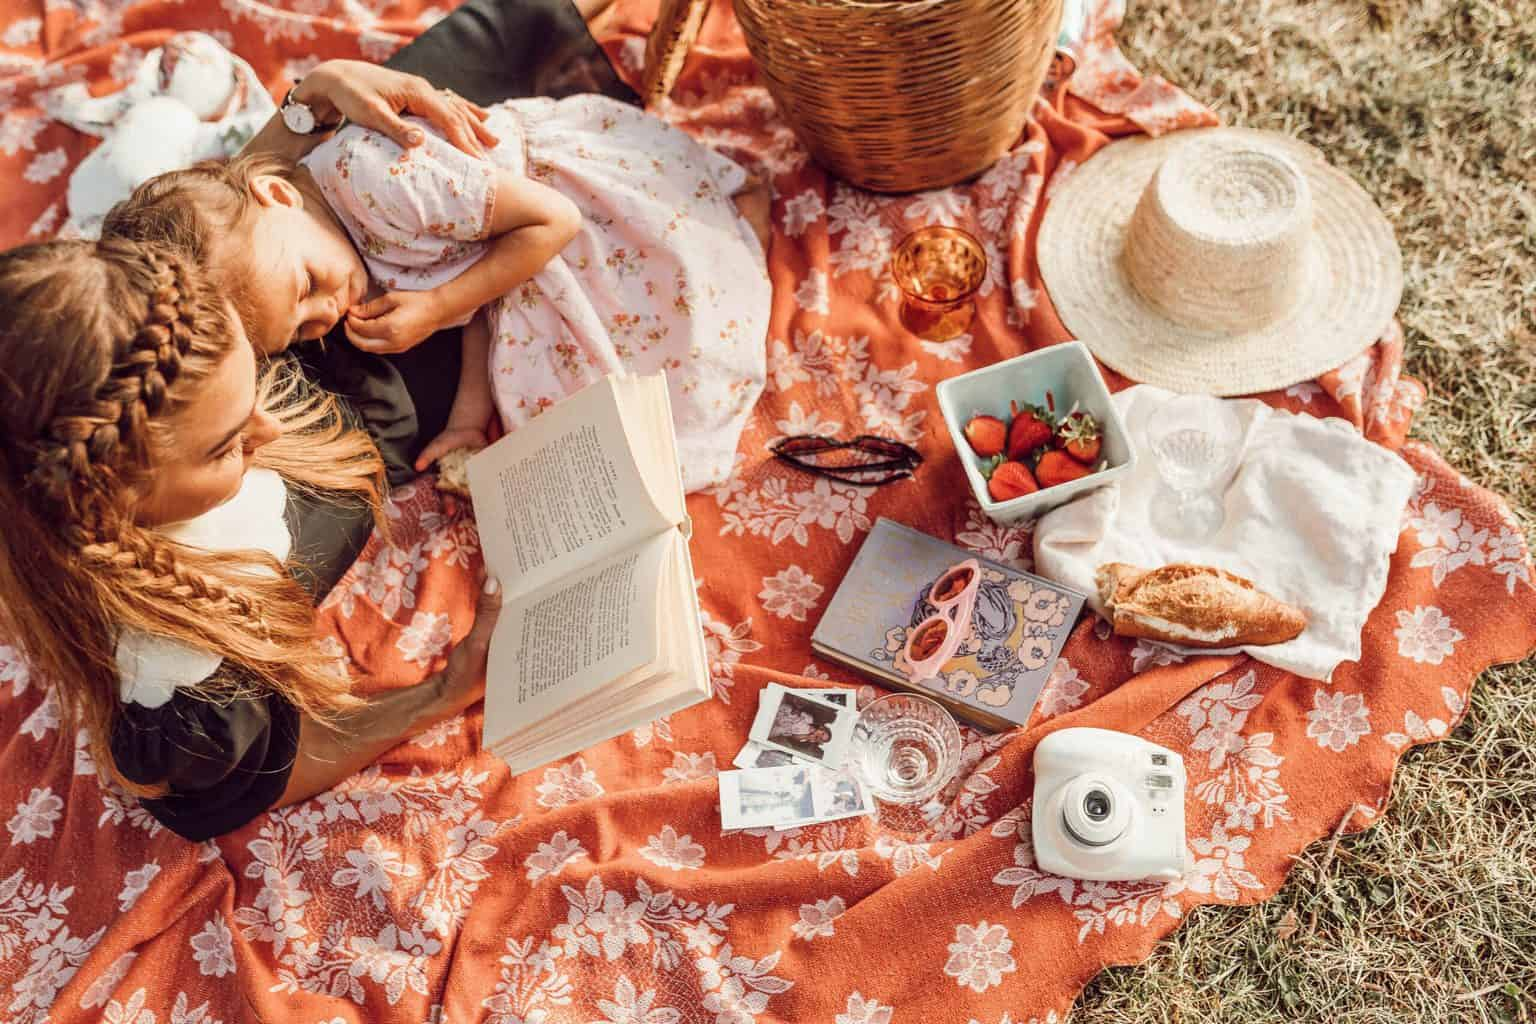 How to Plan a Picnic in 5 Easy Steps